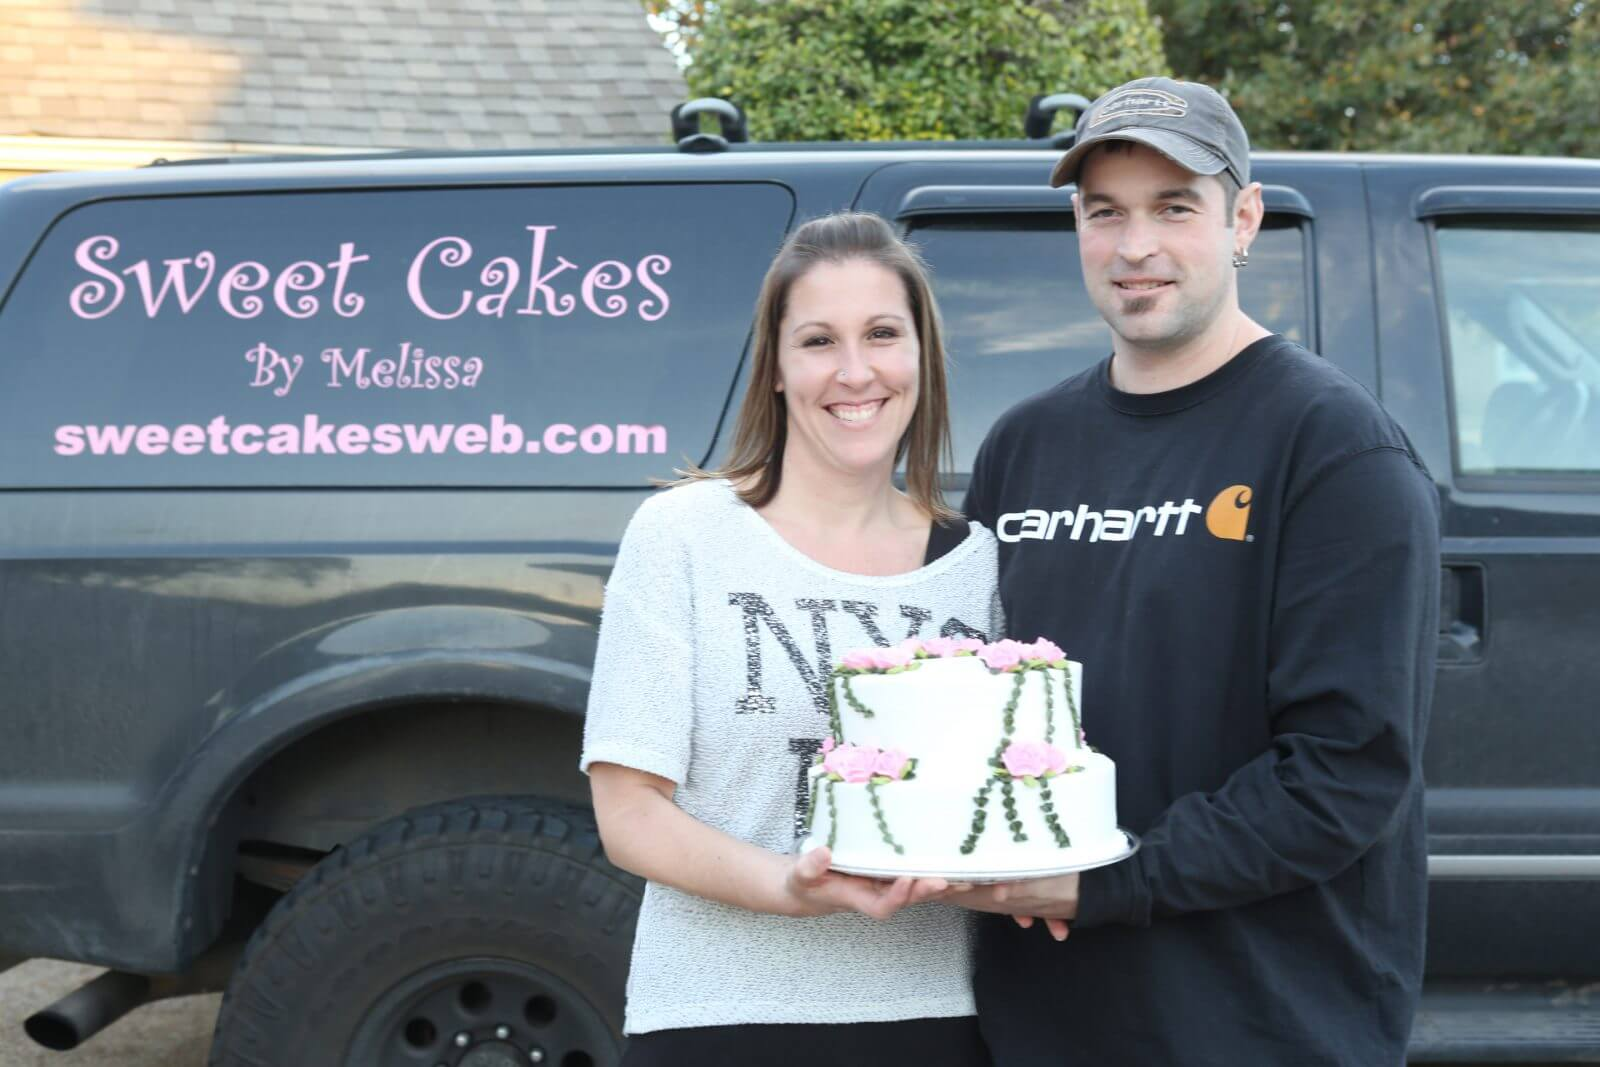 Melissa and Aaron Klein of 'Sweet Cakes by Melissa' whose petition is currently pending before the Supreme Court. (Courtesy of First Liberty Institute)